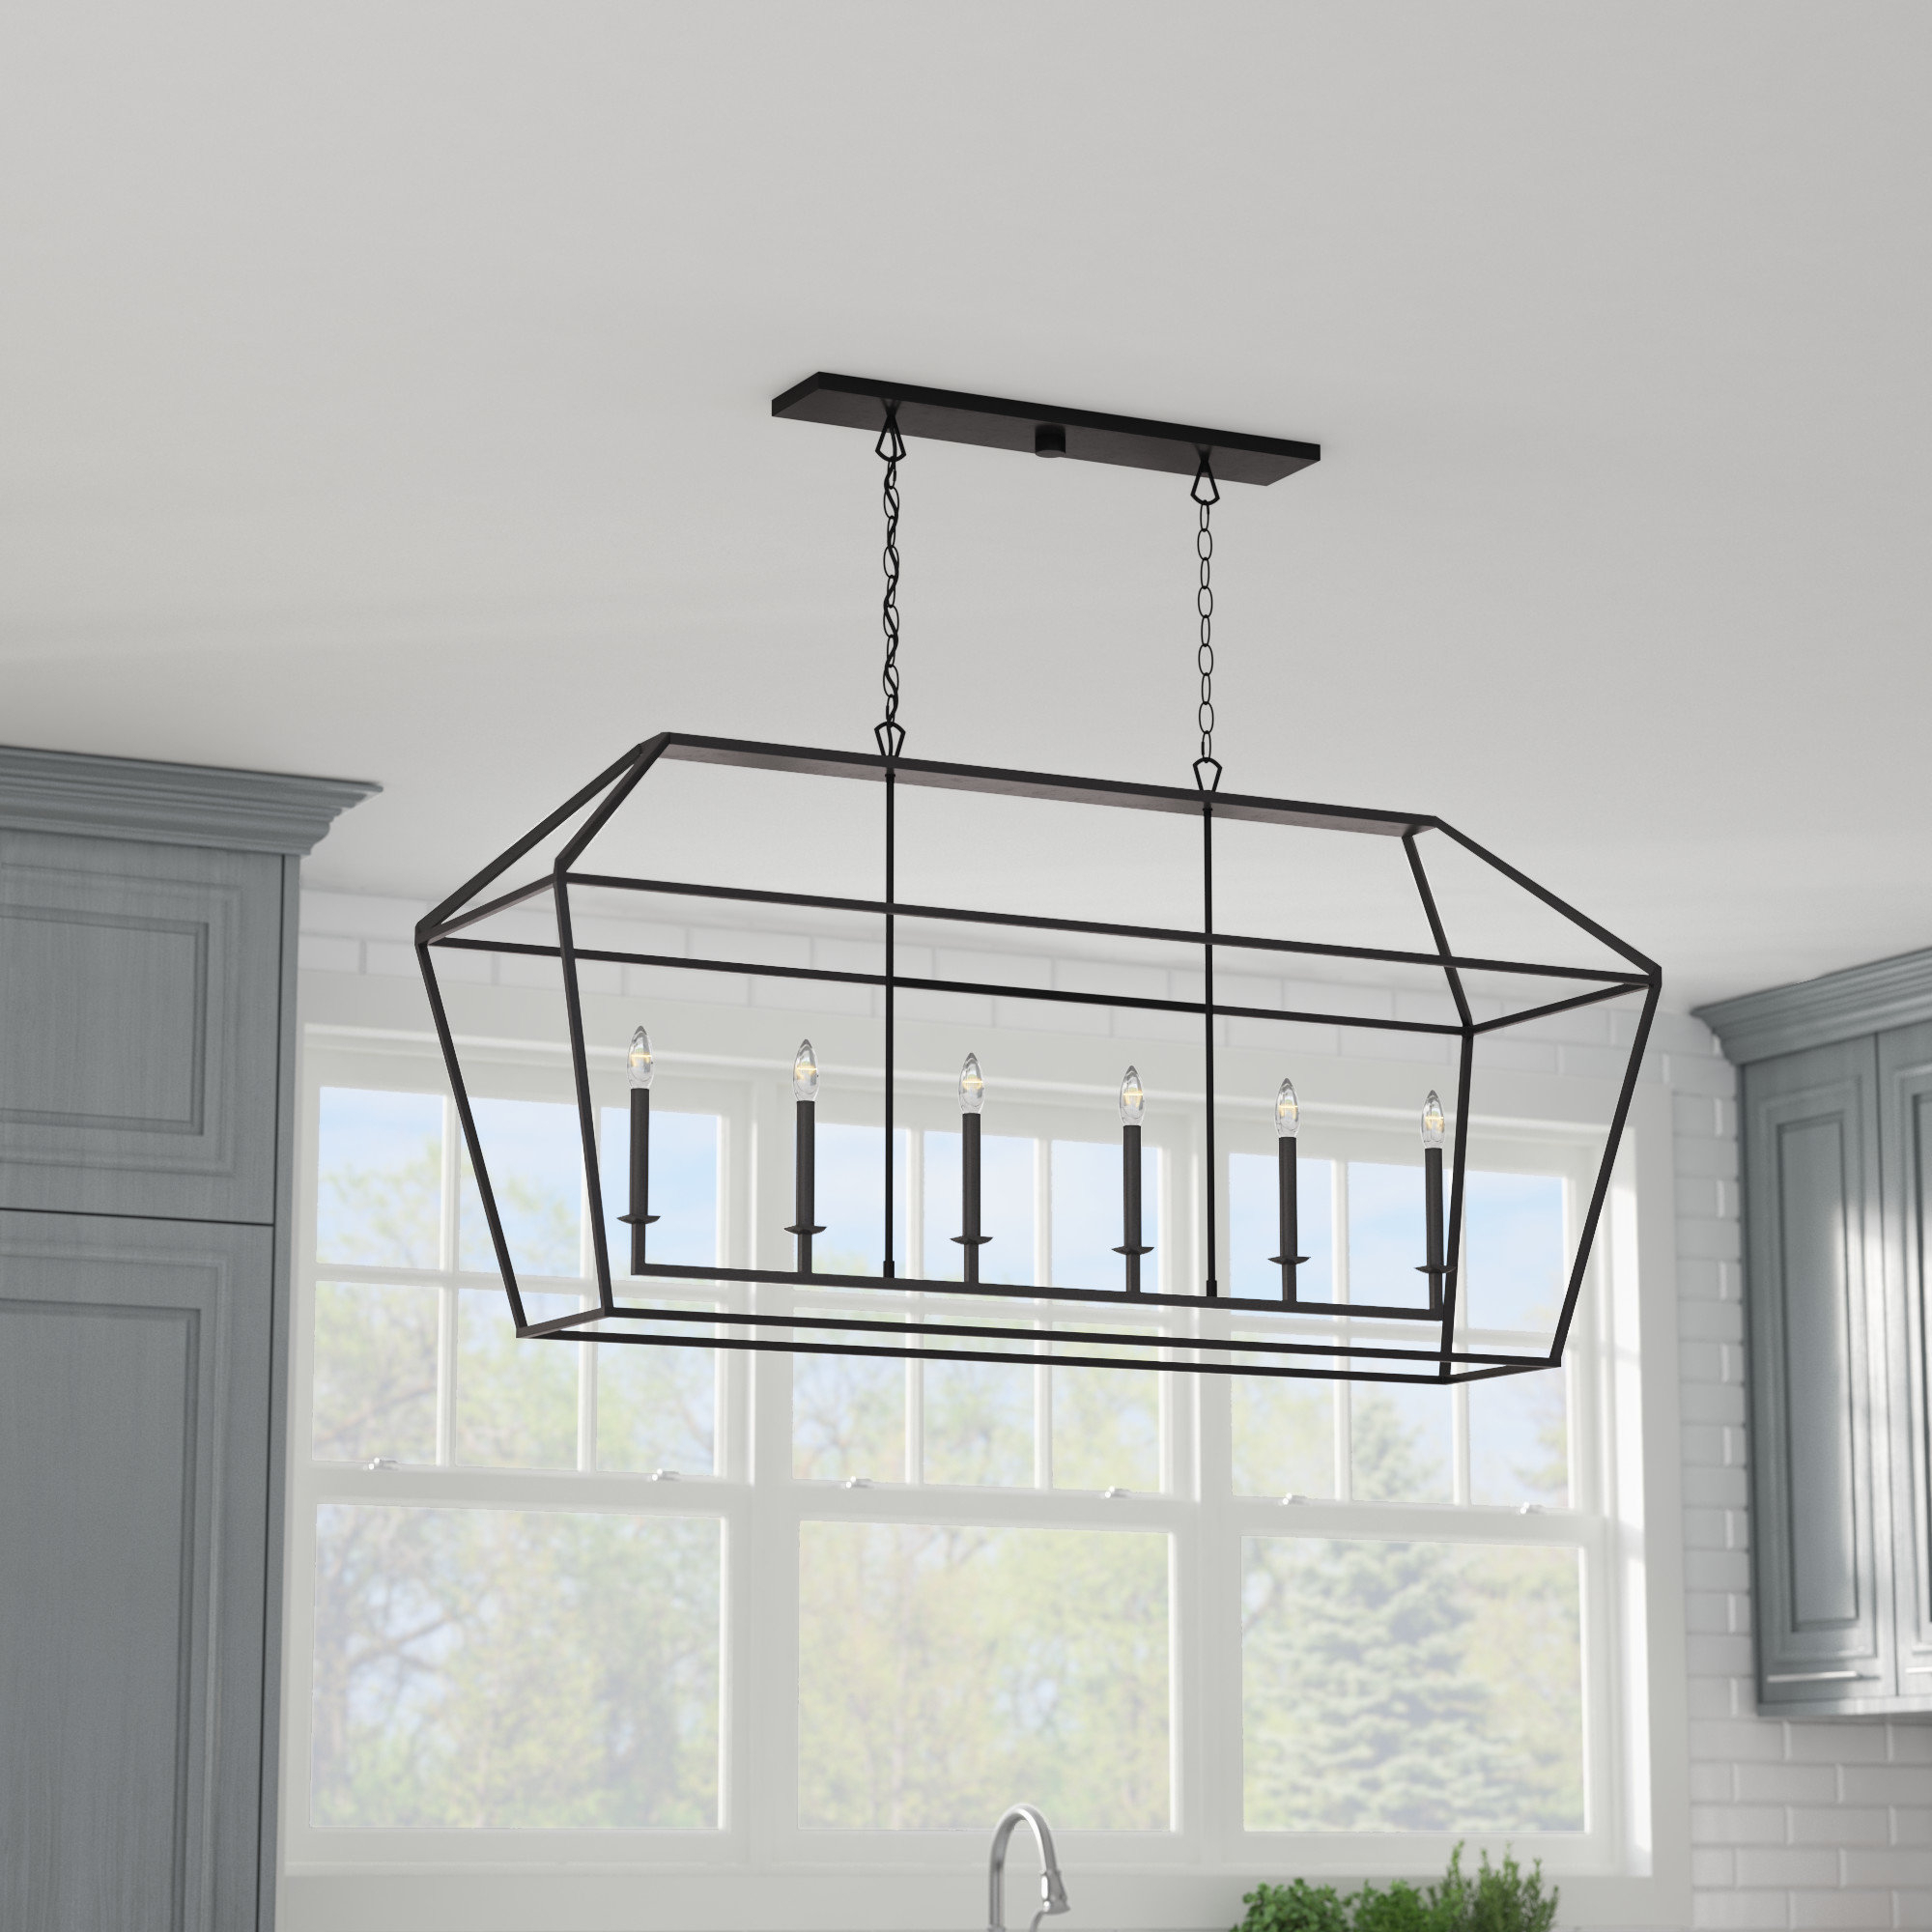 Padminie 6-Light Kitchen Island Pendant with Odie 8-Light Kitchen Island Square / Rectangle Pendants (Image 24 of 30)